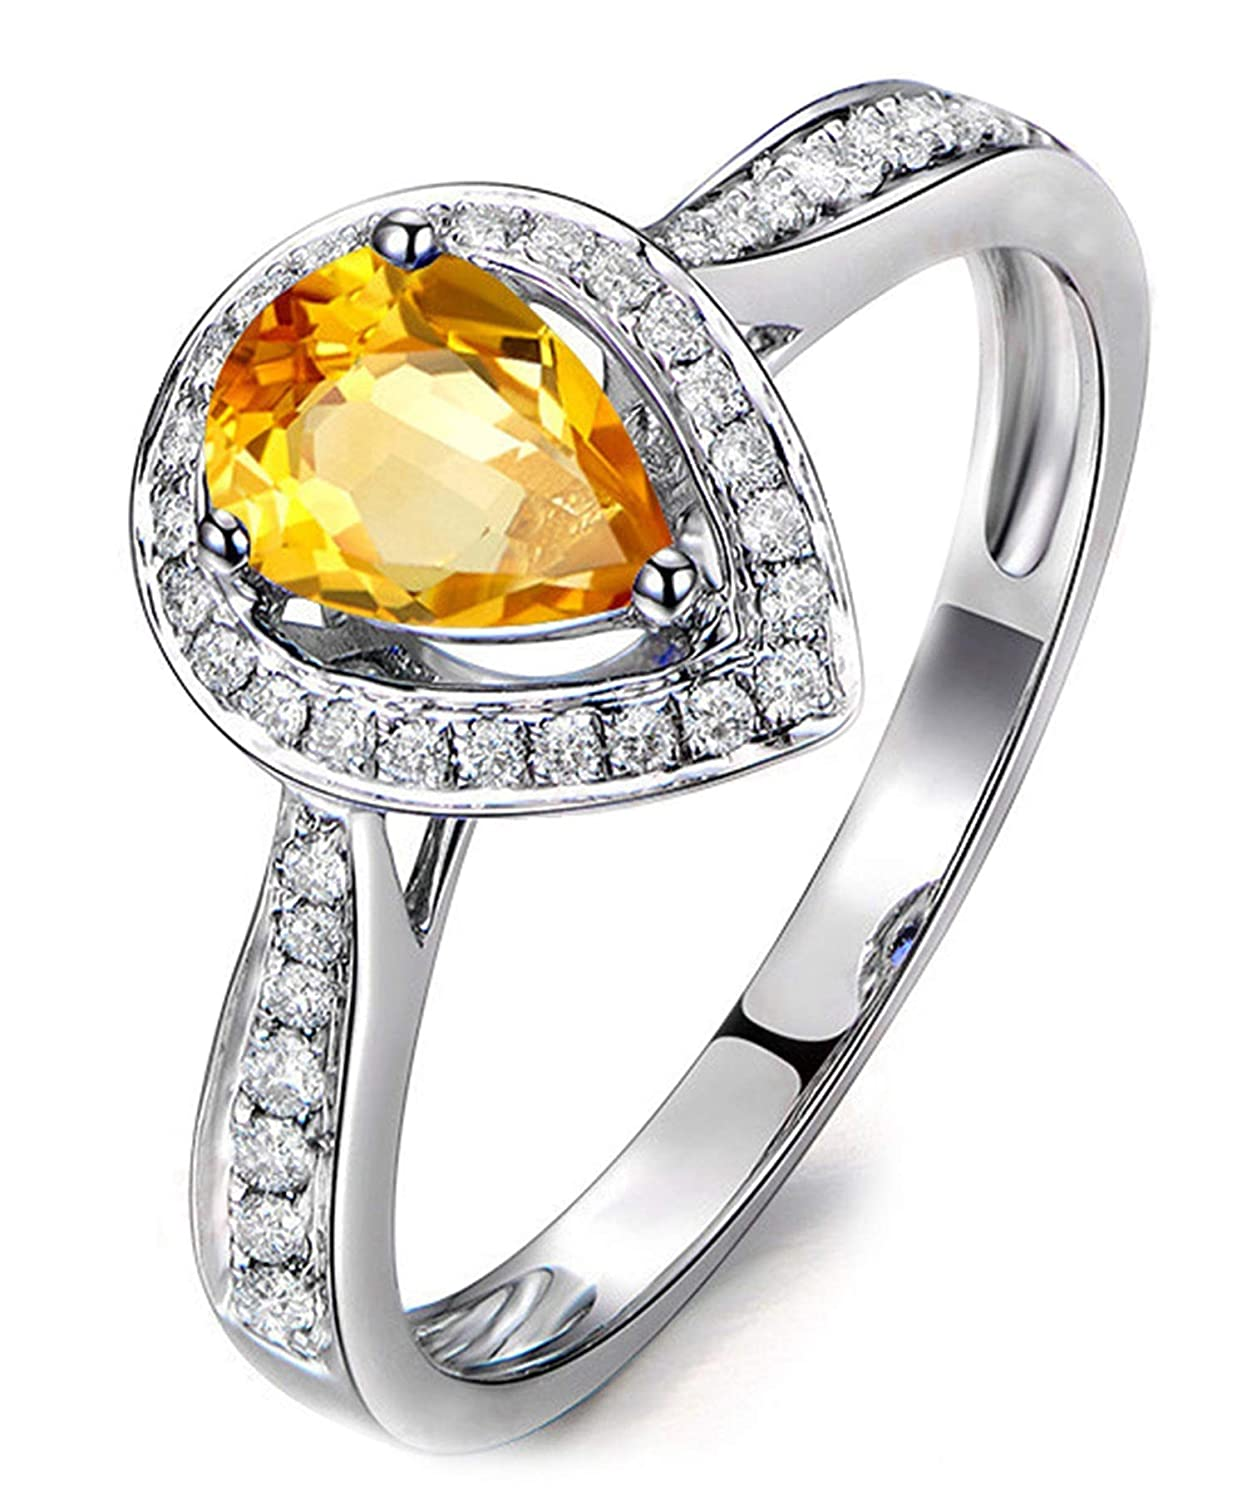 FT-Ring Fashion Charming Yellow Zircon Rings Silver Color Rings Jewelry For Women Wedding Rings